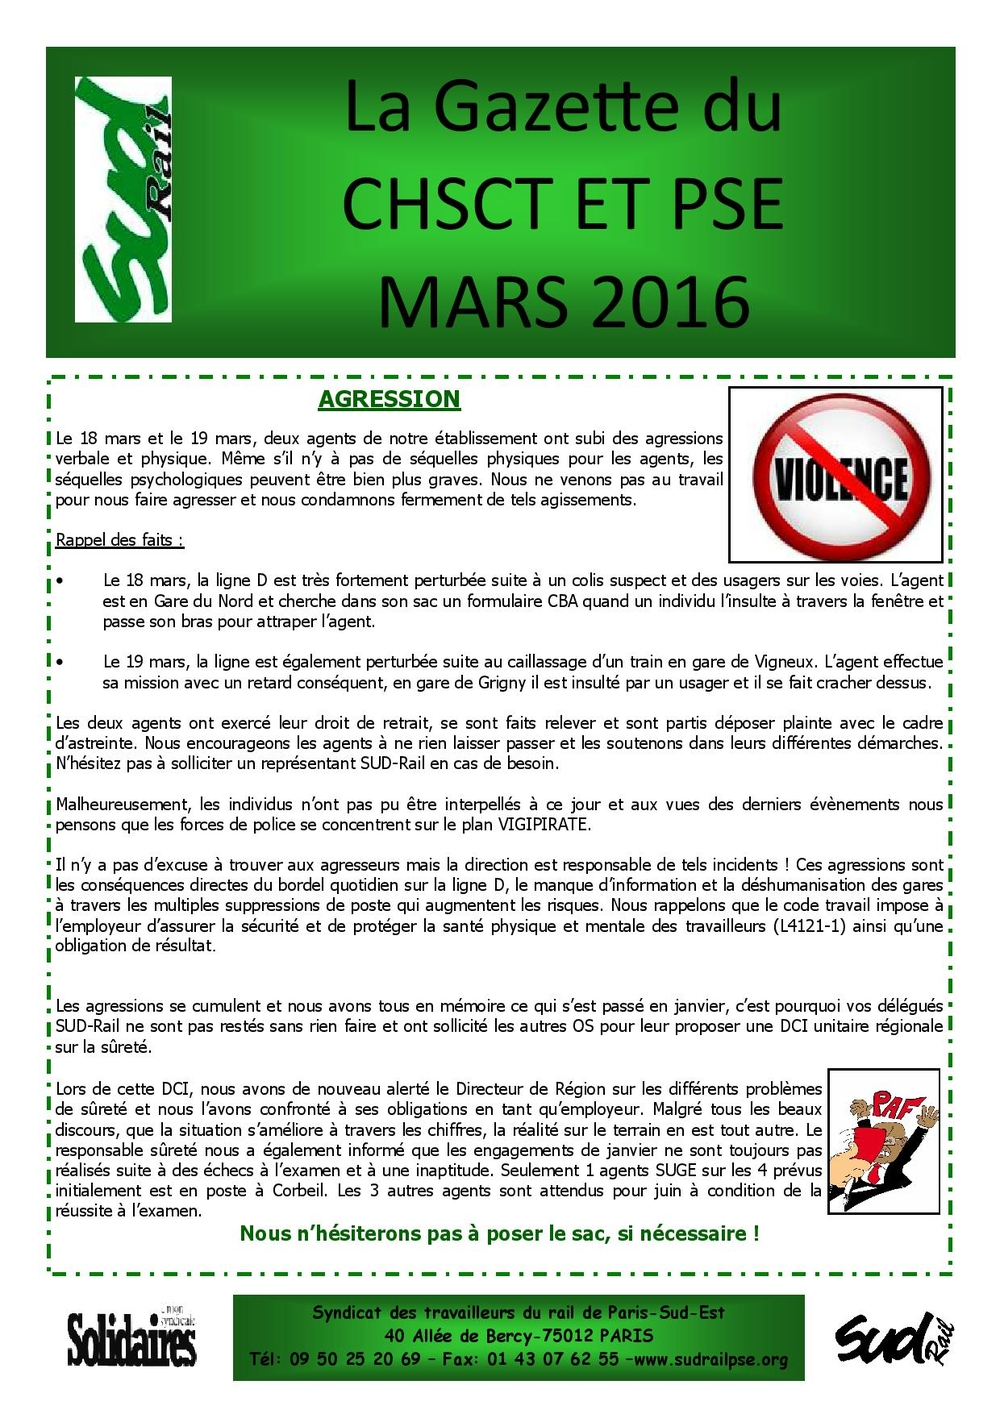 etpse crchsct 03-2016-page-001